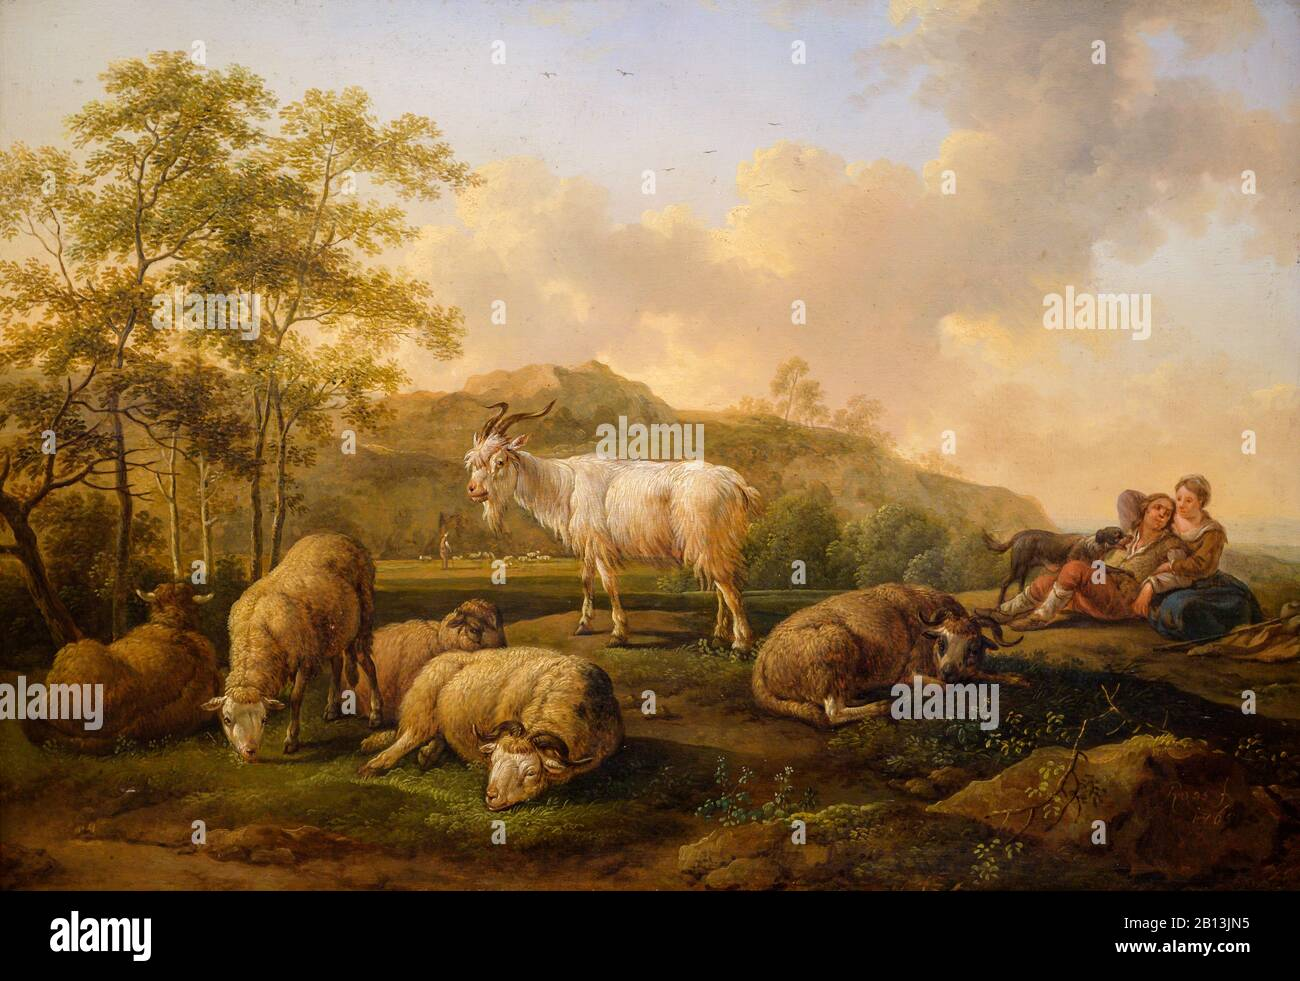 """""""Landscape with Grazing Cattle"""" (1765) by Joseph Roos the Elder (1726-1805) Stock Photo"""